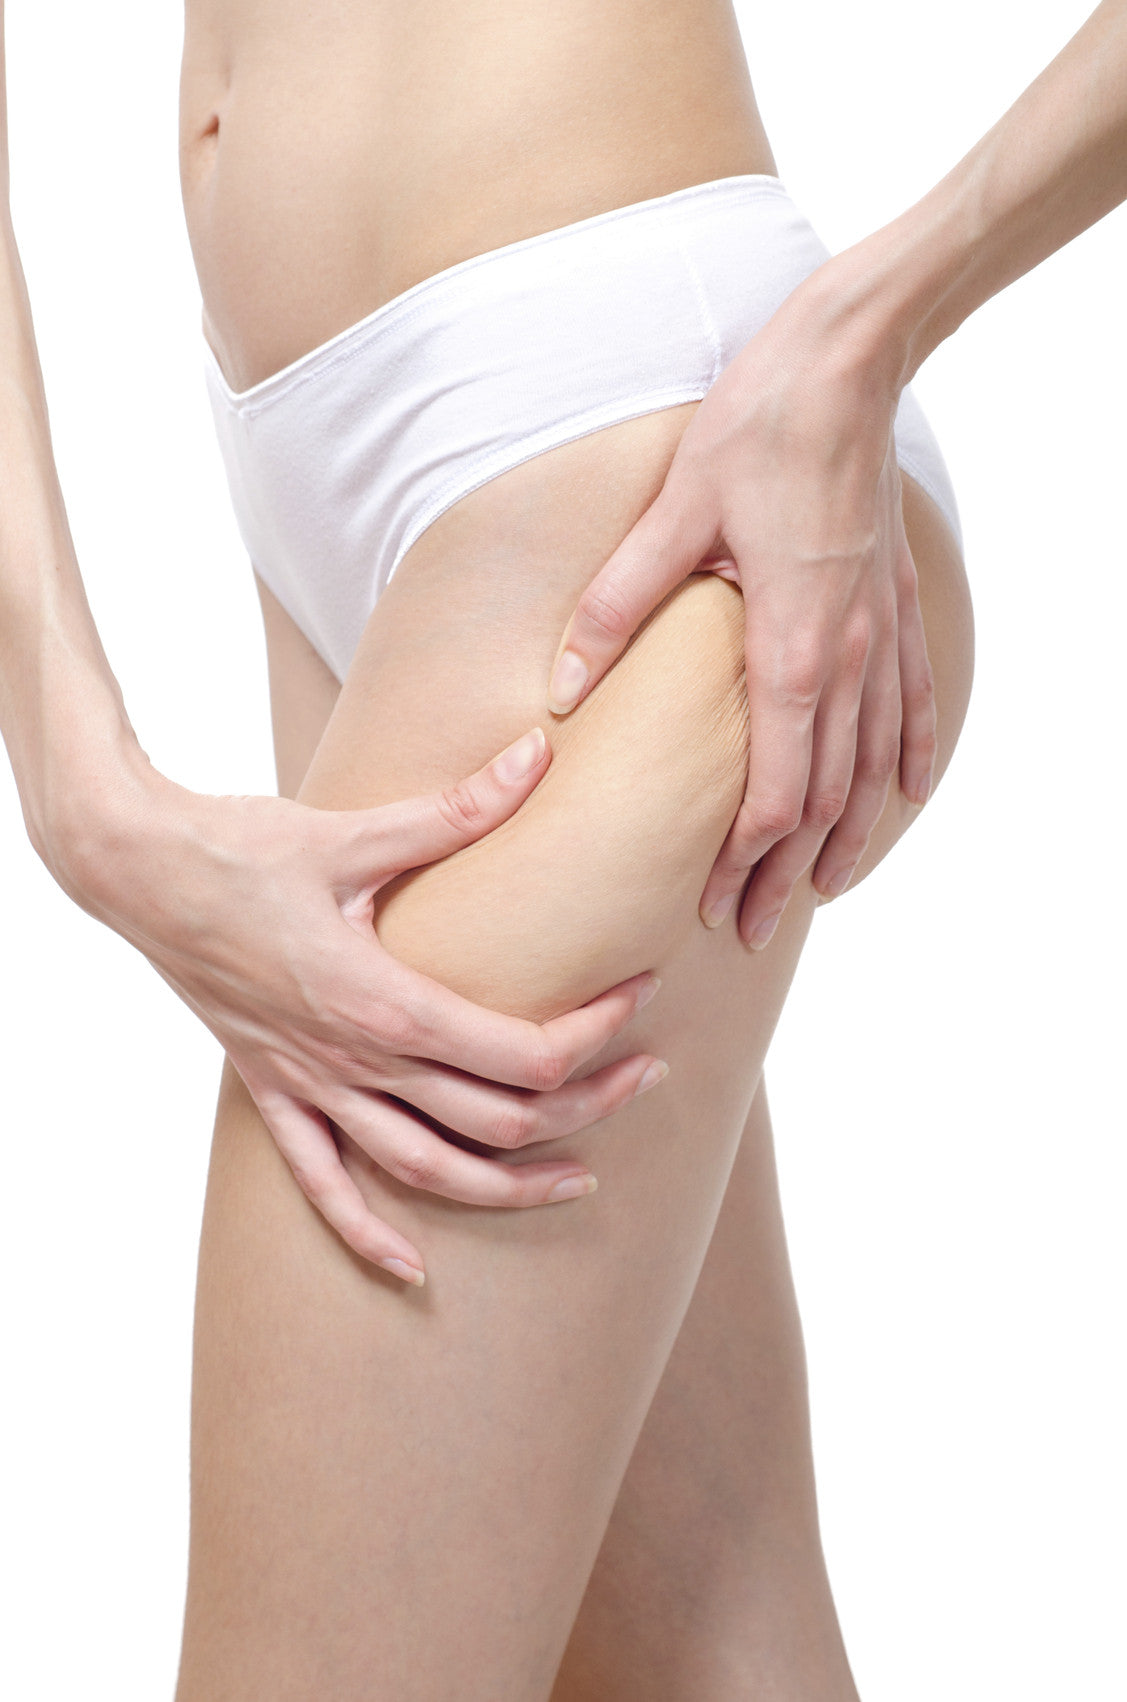 Do You Have Unsightly Cellulite?